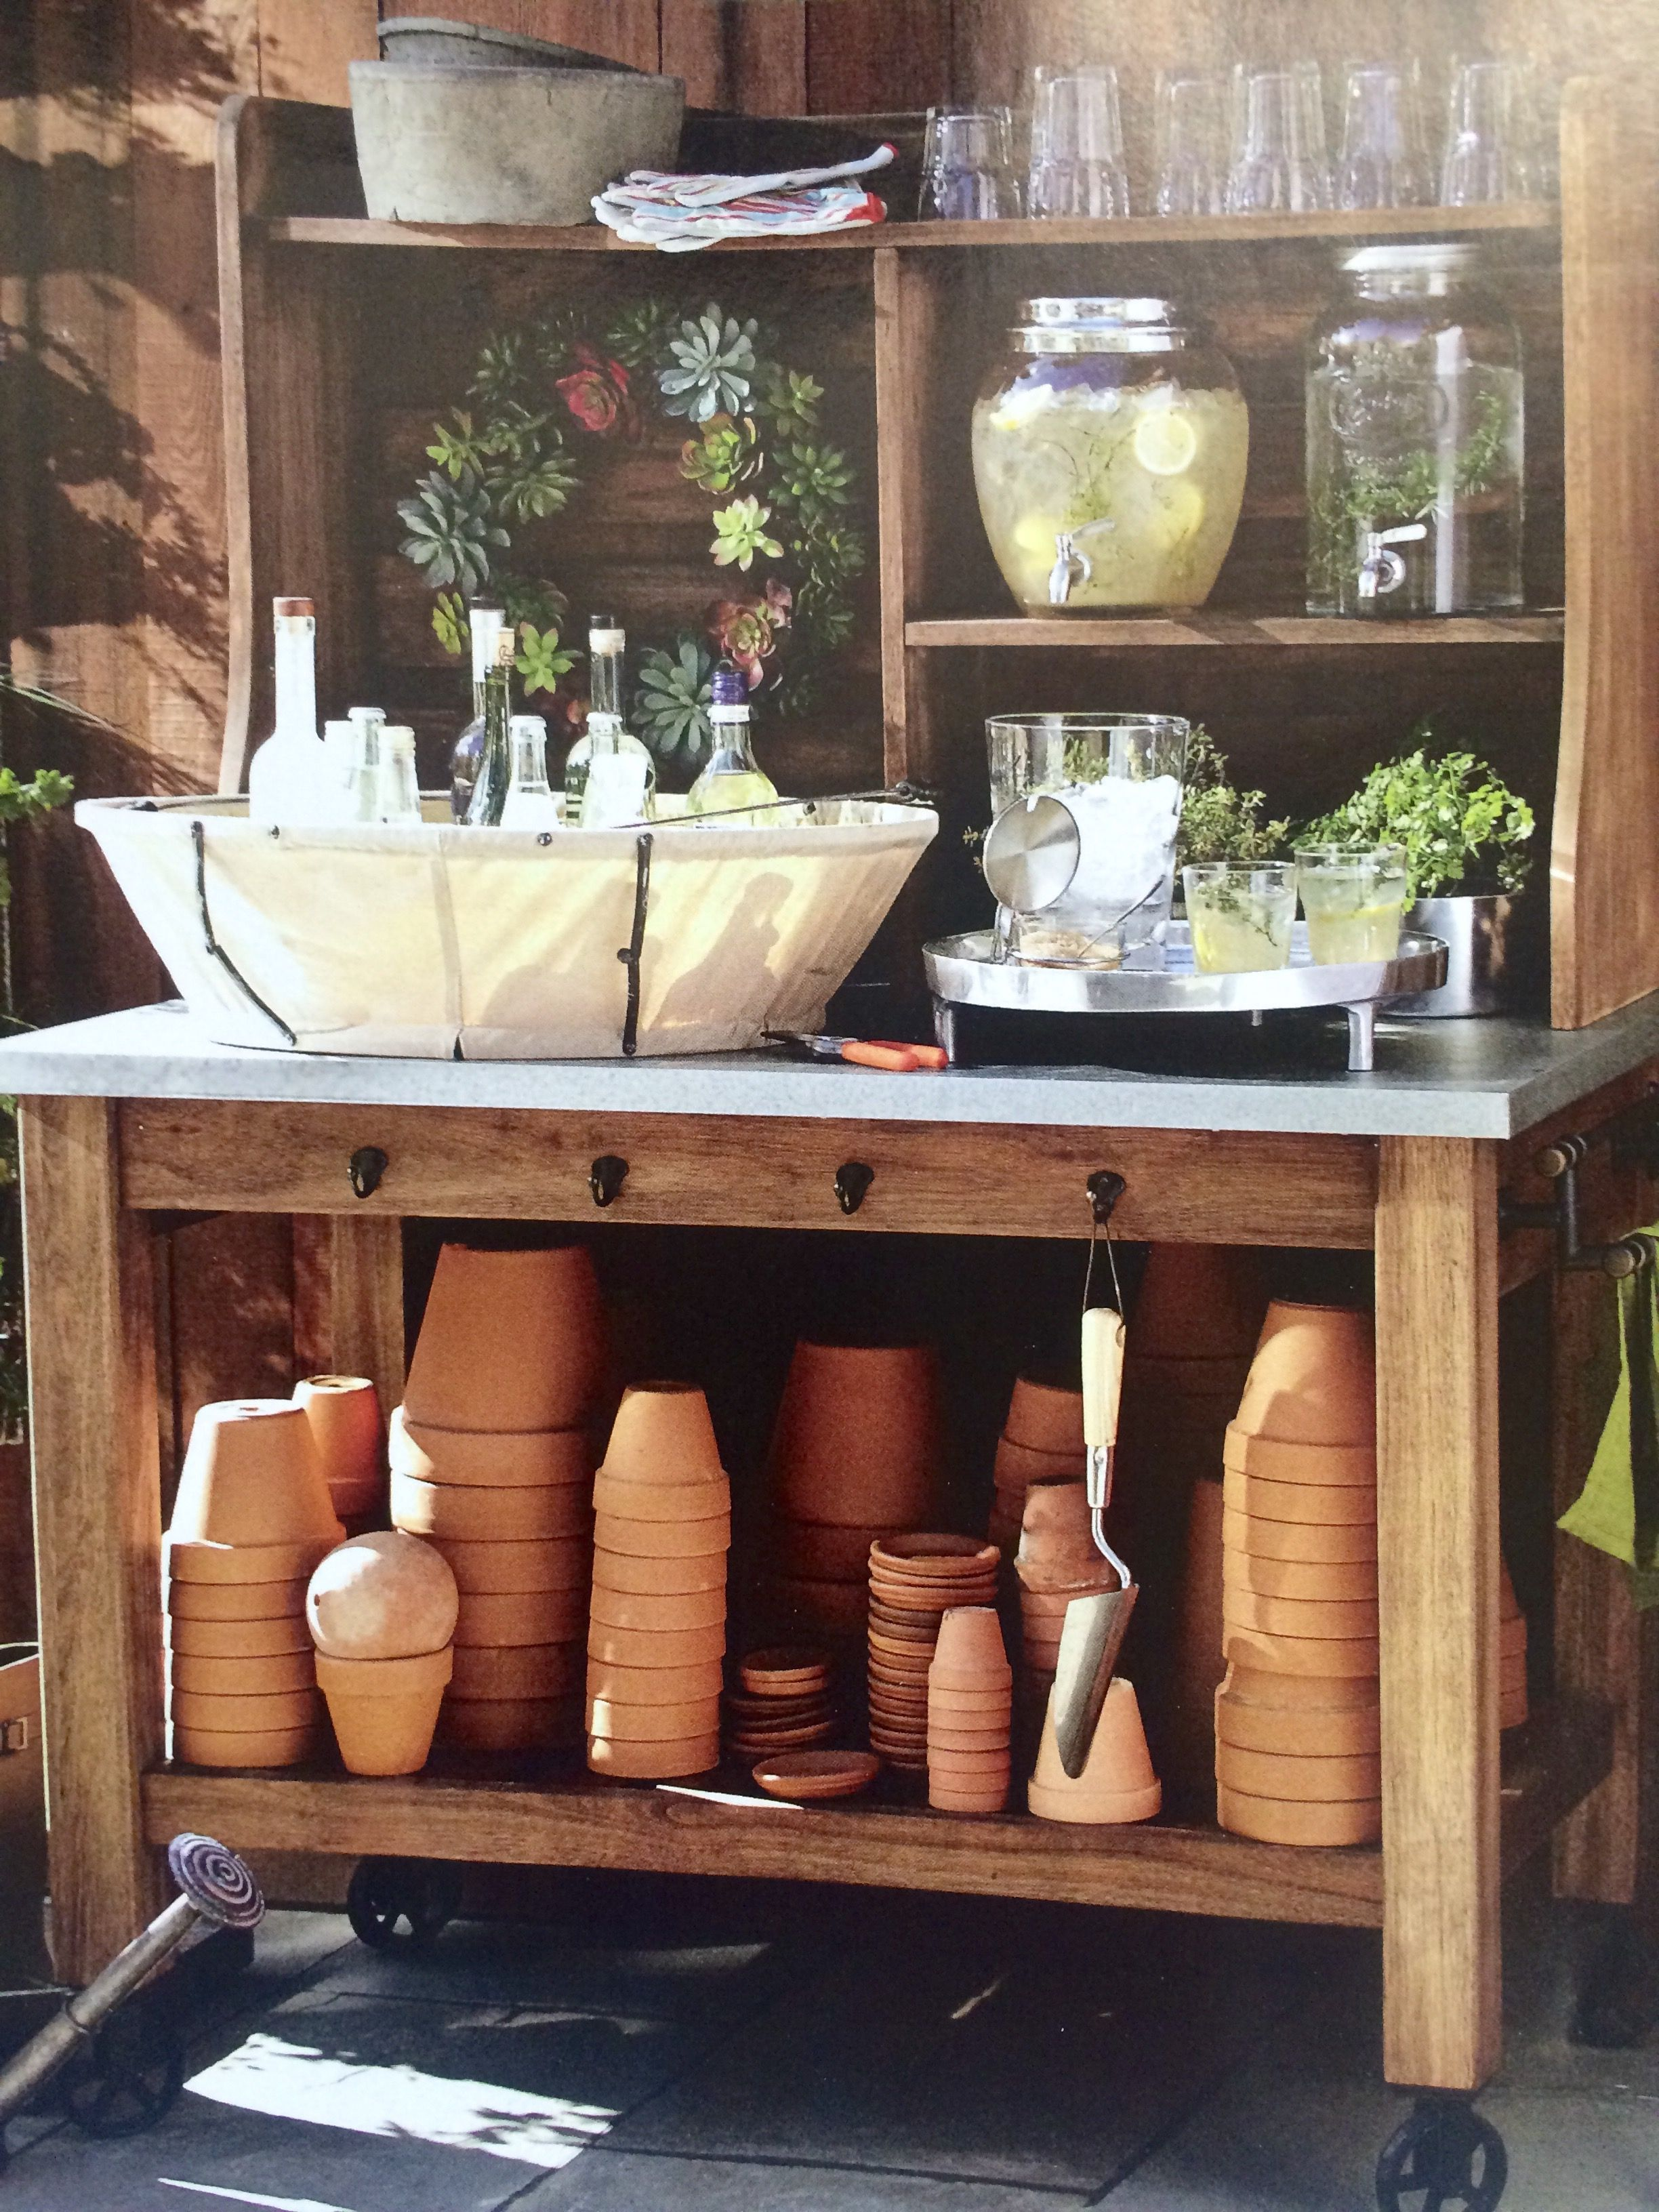 Pottery Barn Feb 2015 Outdoor Drink Station Furniture